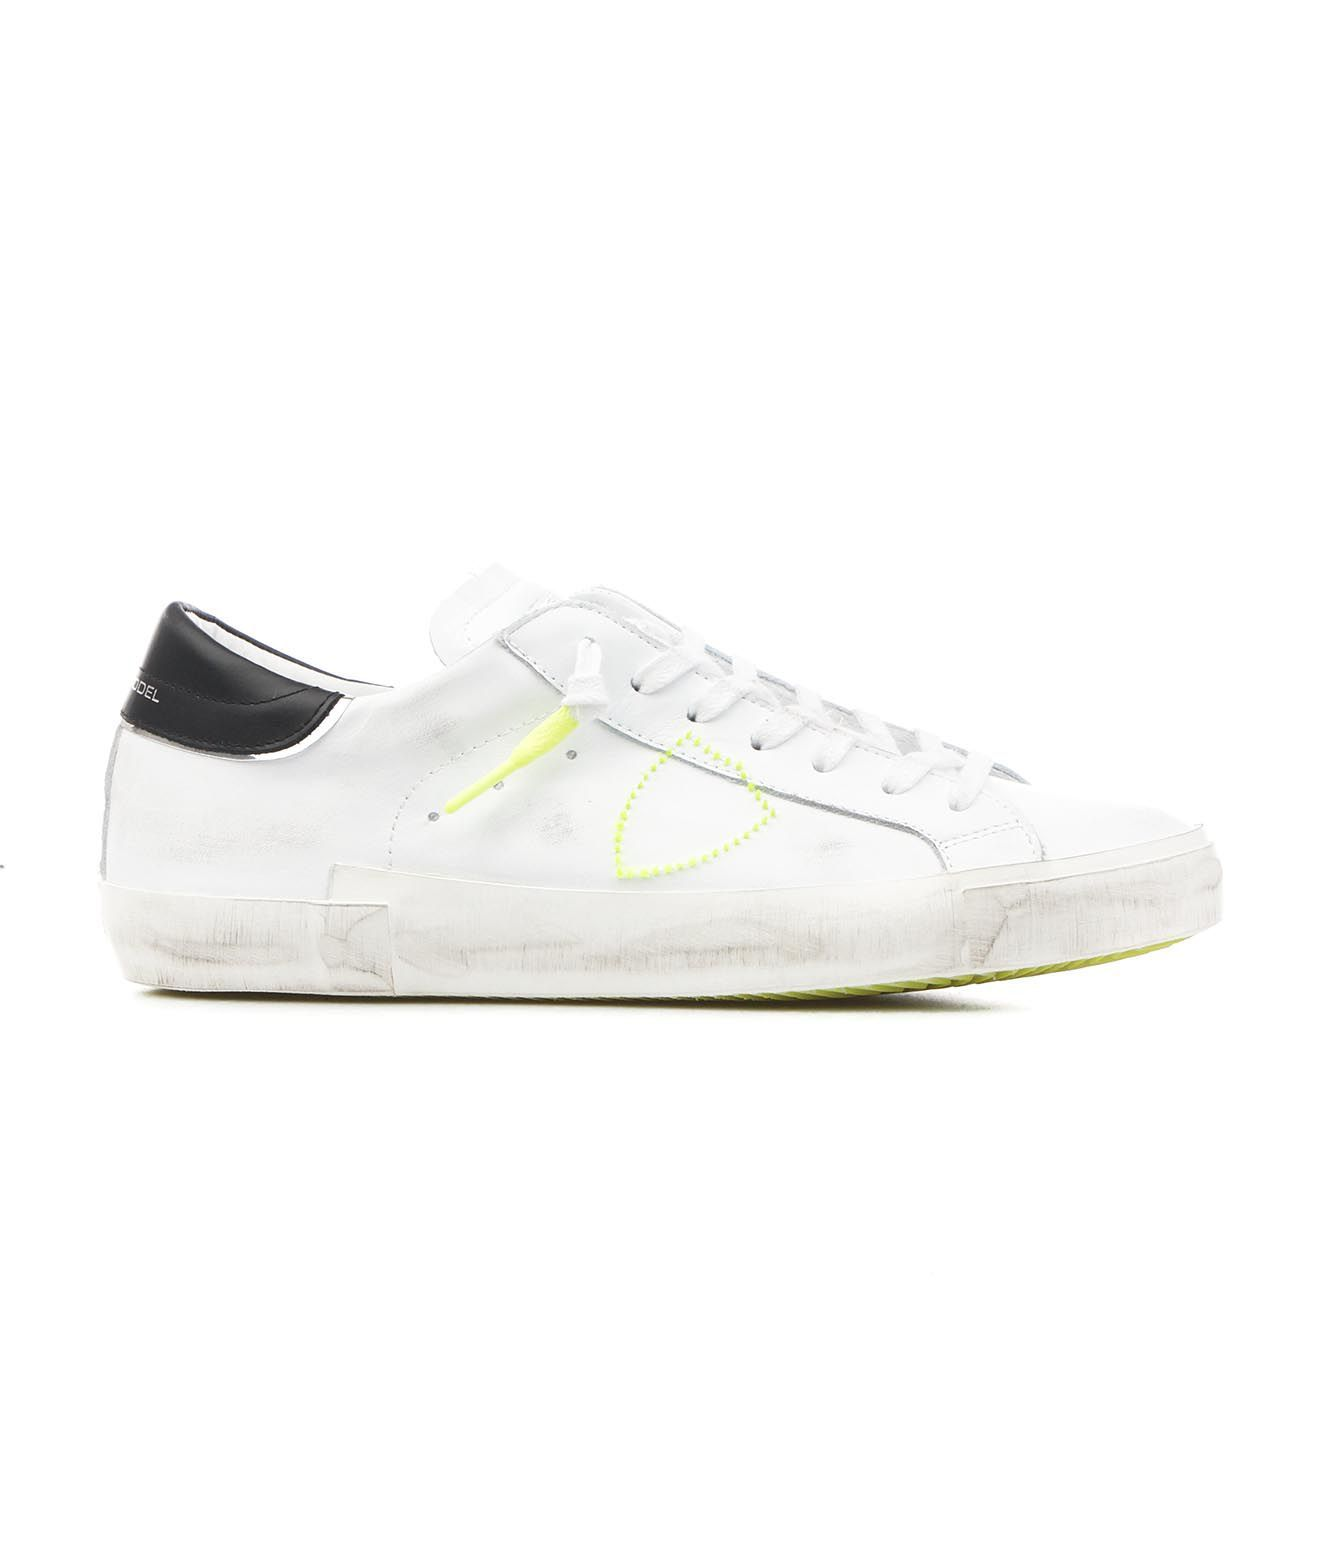 Philippe Model Leathers PHILIPPE MODEL MEN'S PRLUVBF1 WHITE OTHER MATERIALS SNEAKERS